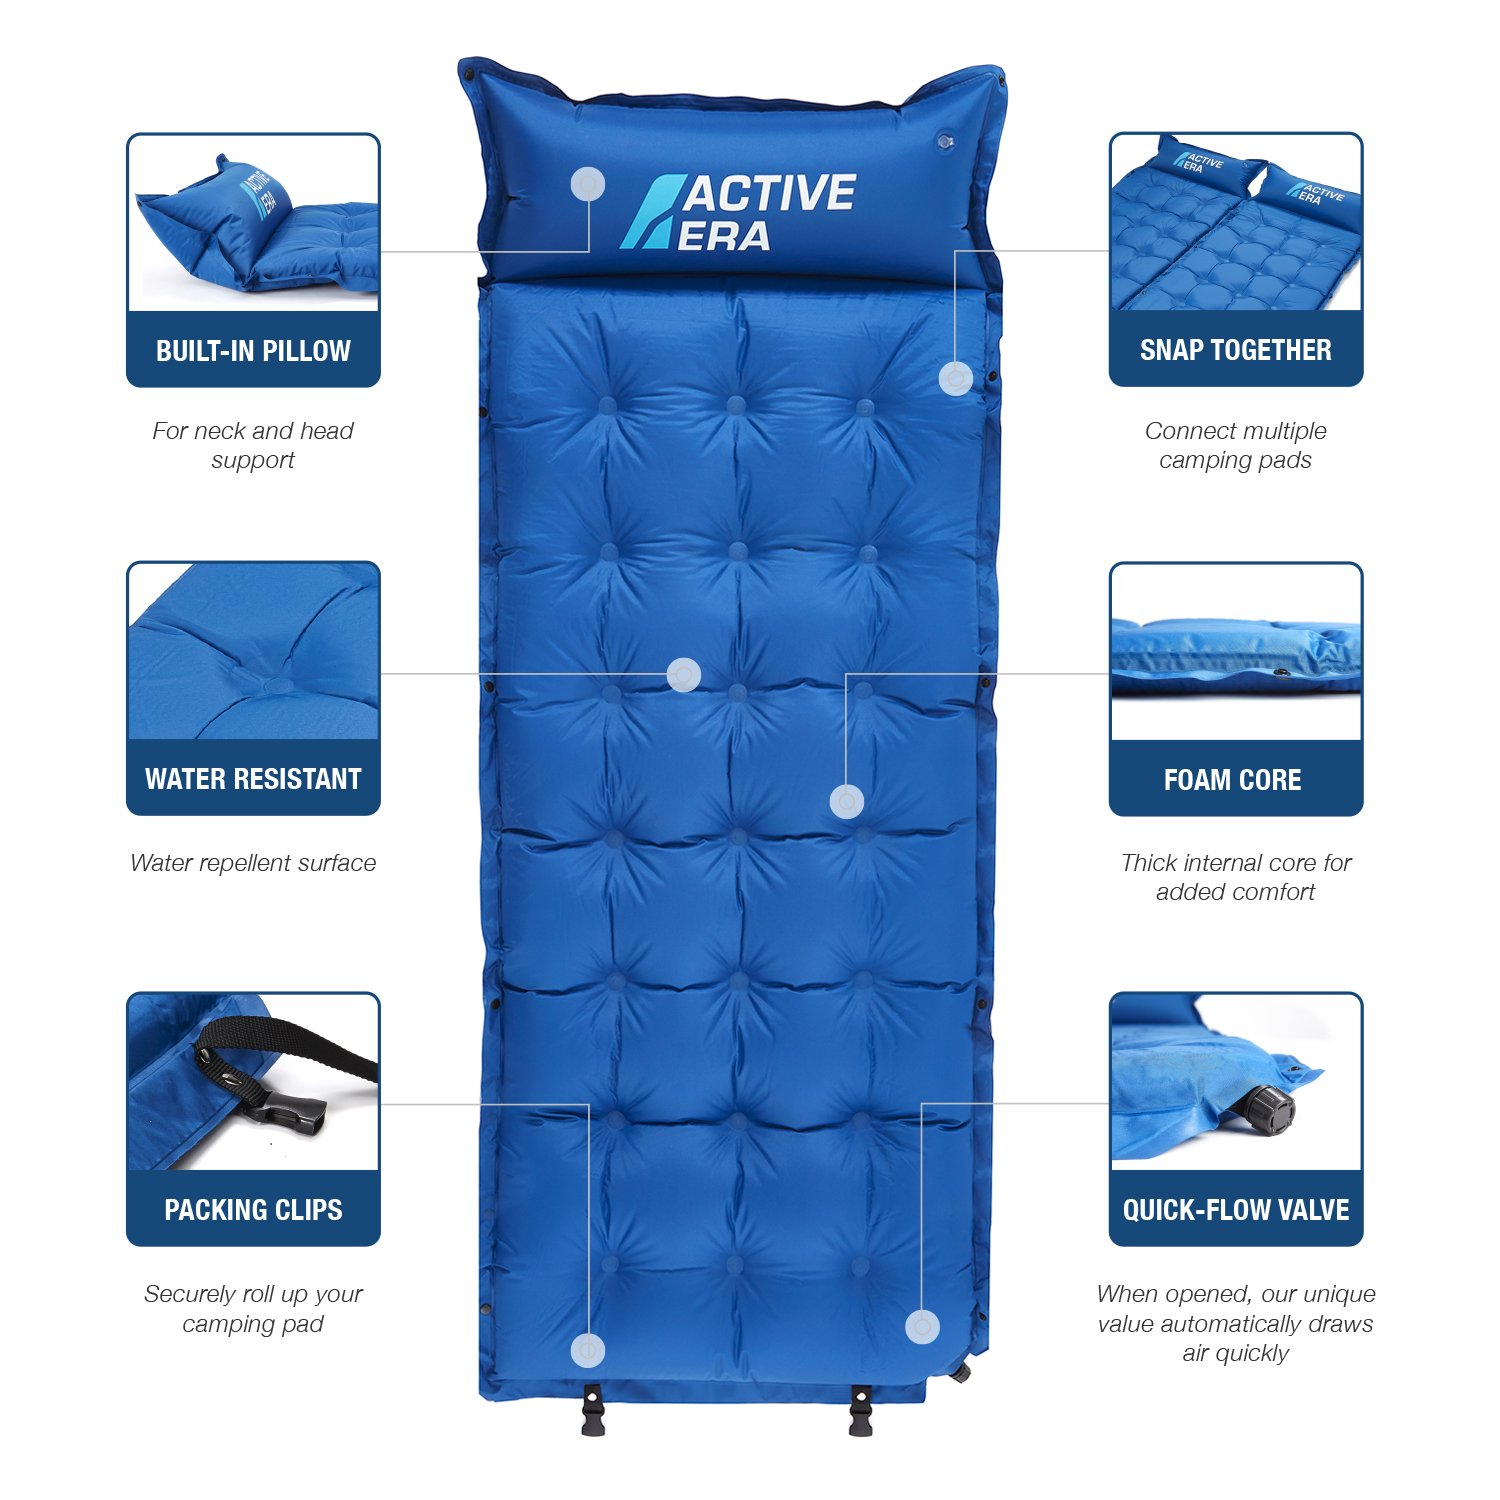 Amazon.com : Active Era Premium Self-Inflating Camping Pad | Lightweight, Abrasion Proof & Water Resistant Foam Sleeping Pad : Sports & Outdoors